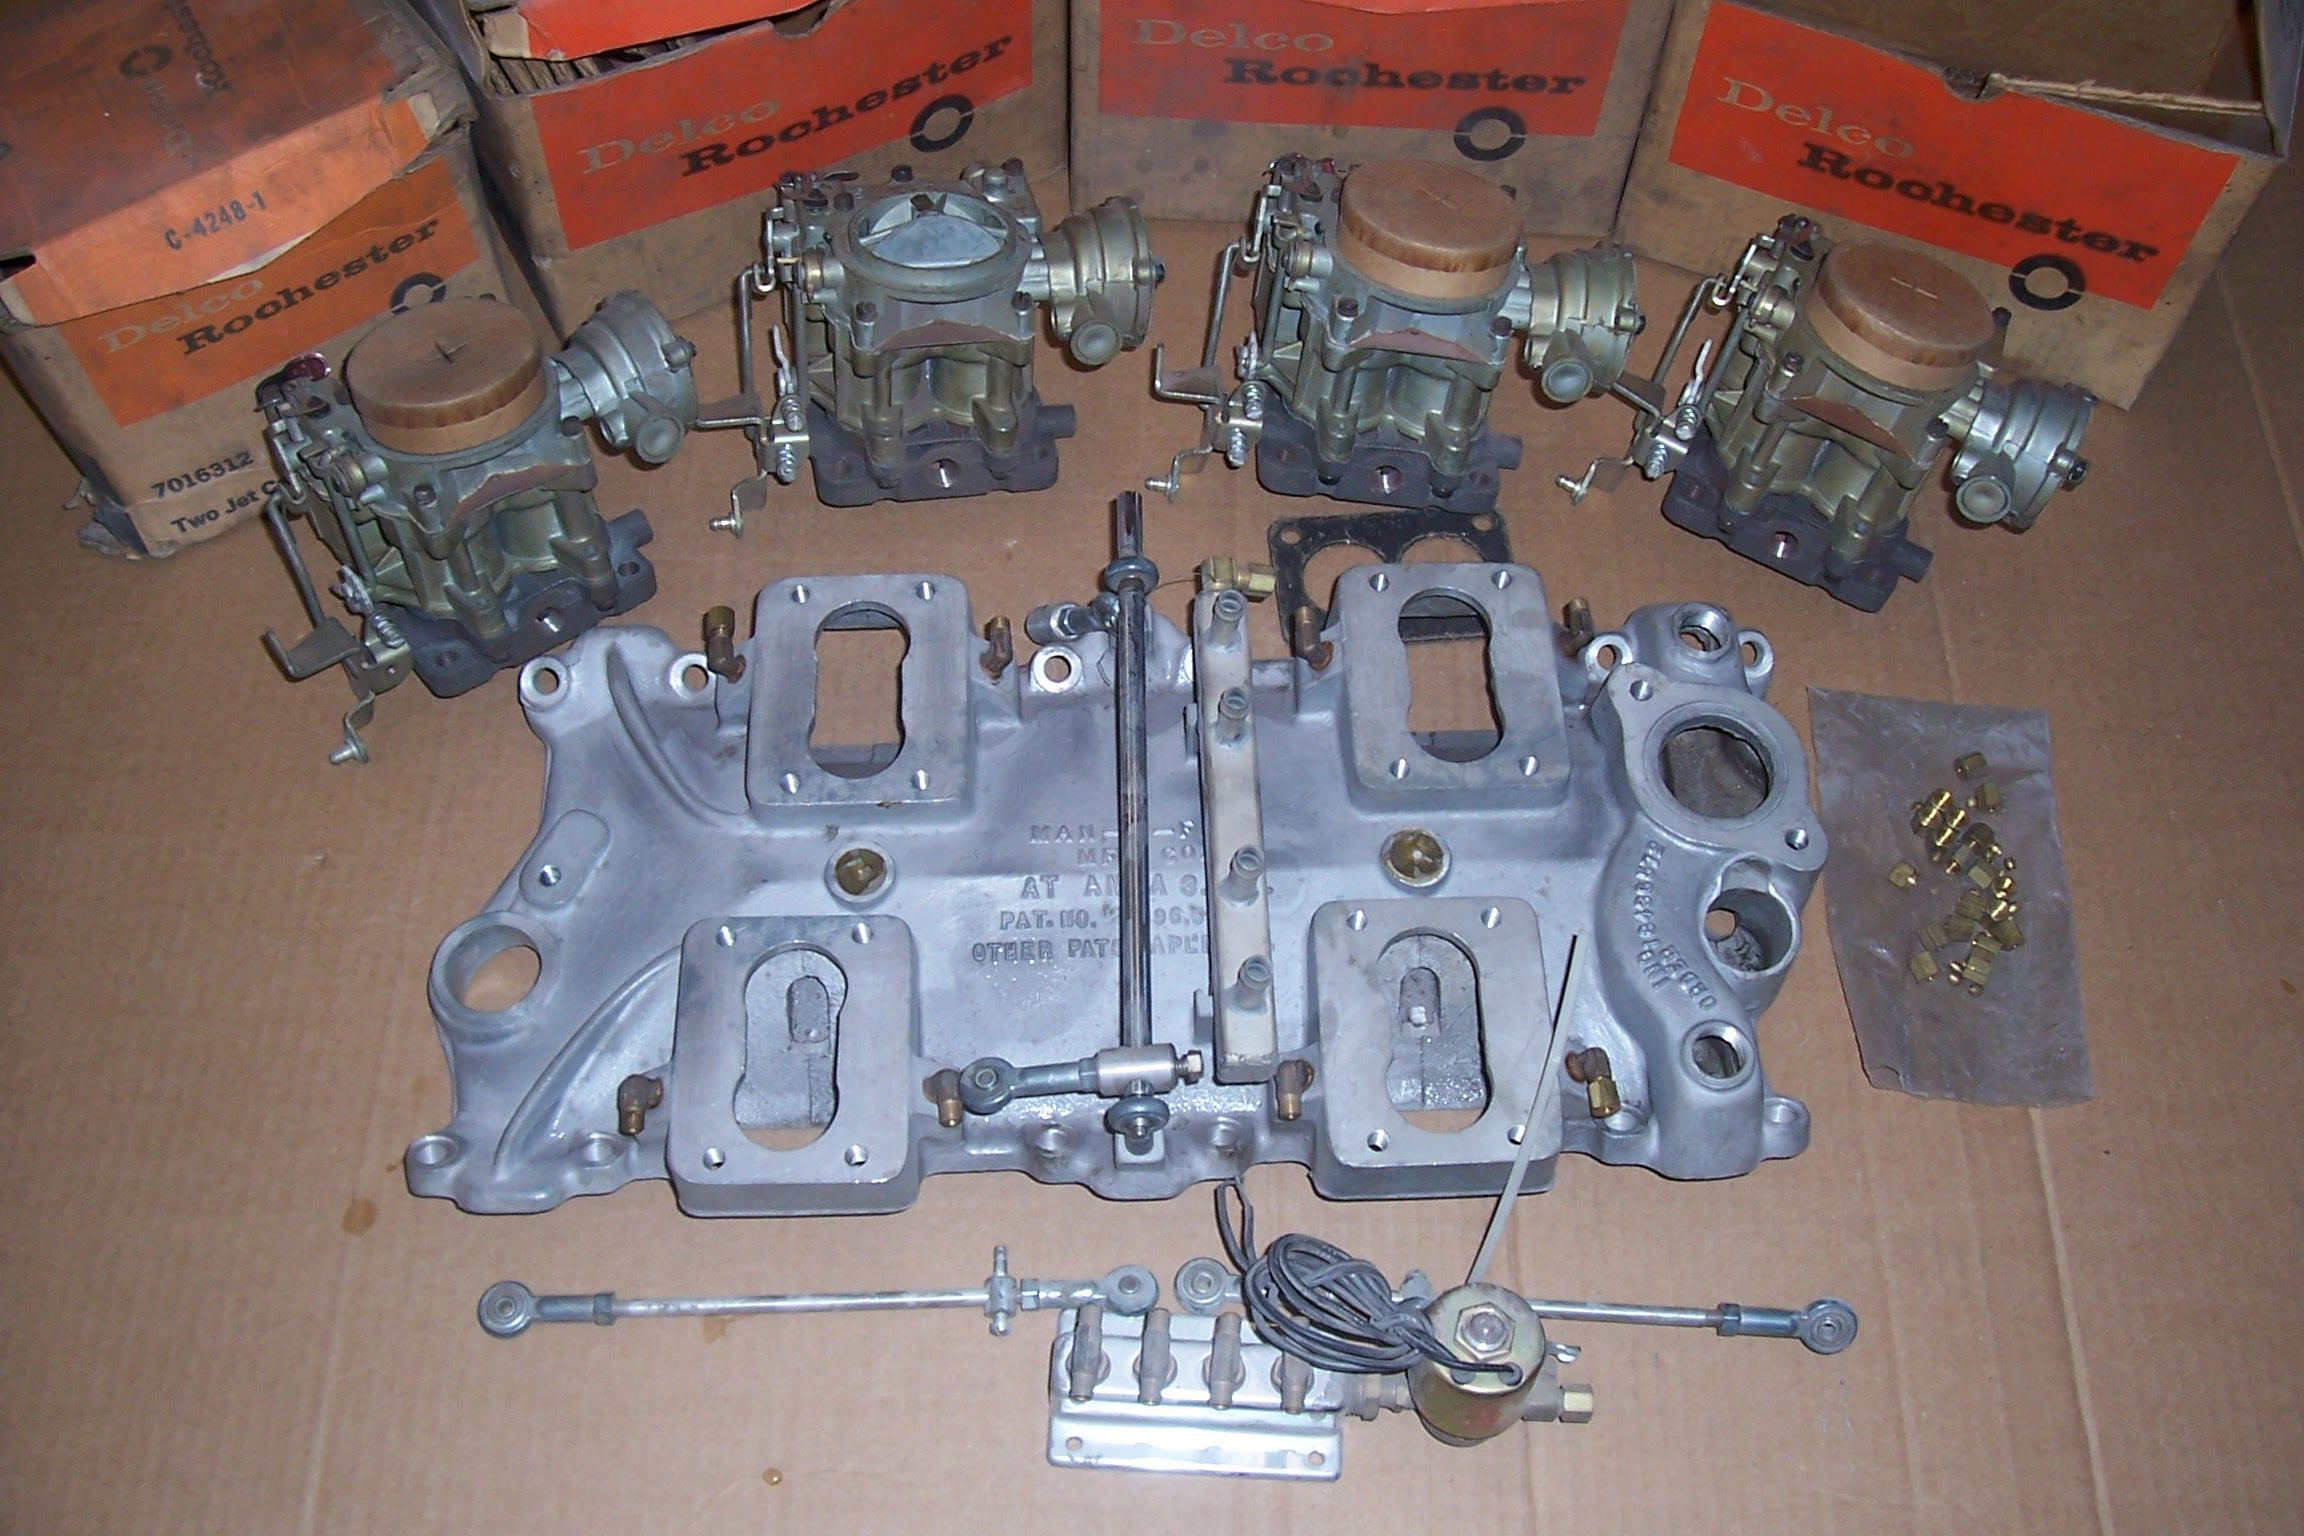 NOS Man-a-Fre Intake | Speed Parts | Lead sled, Hot rods, Sled